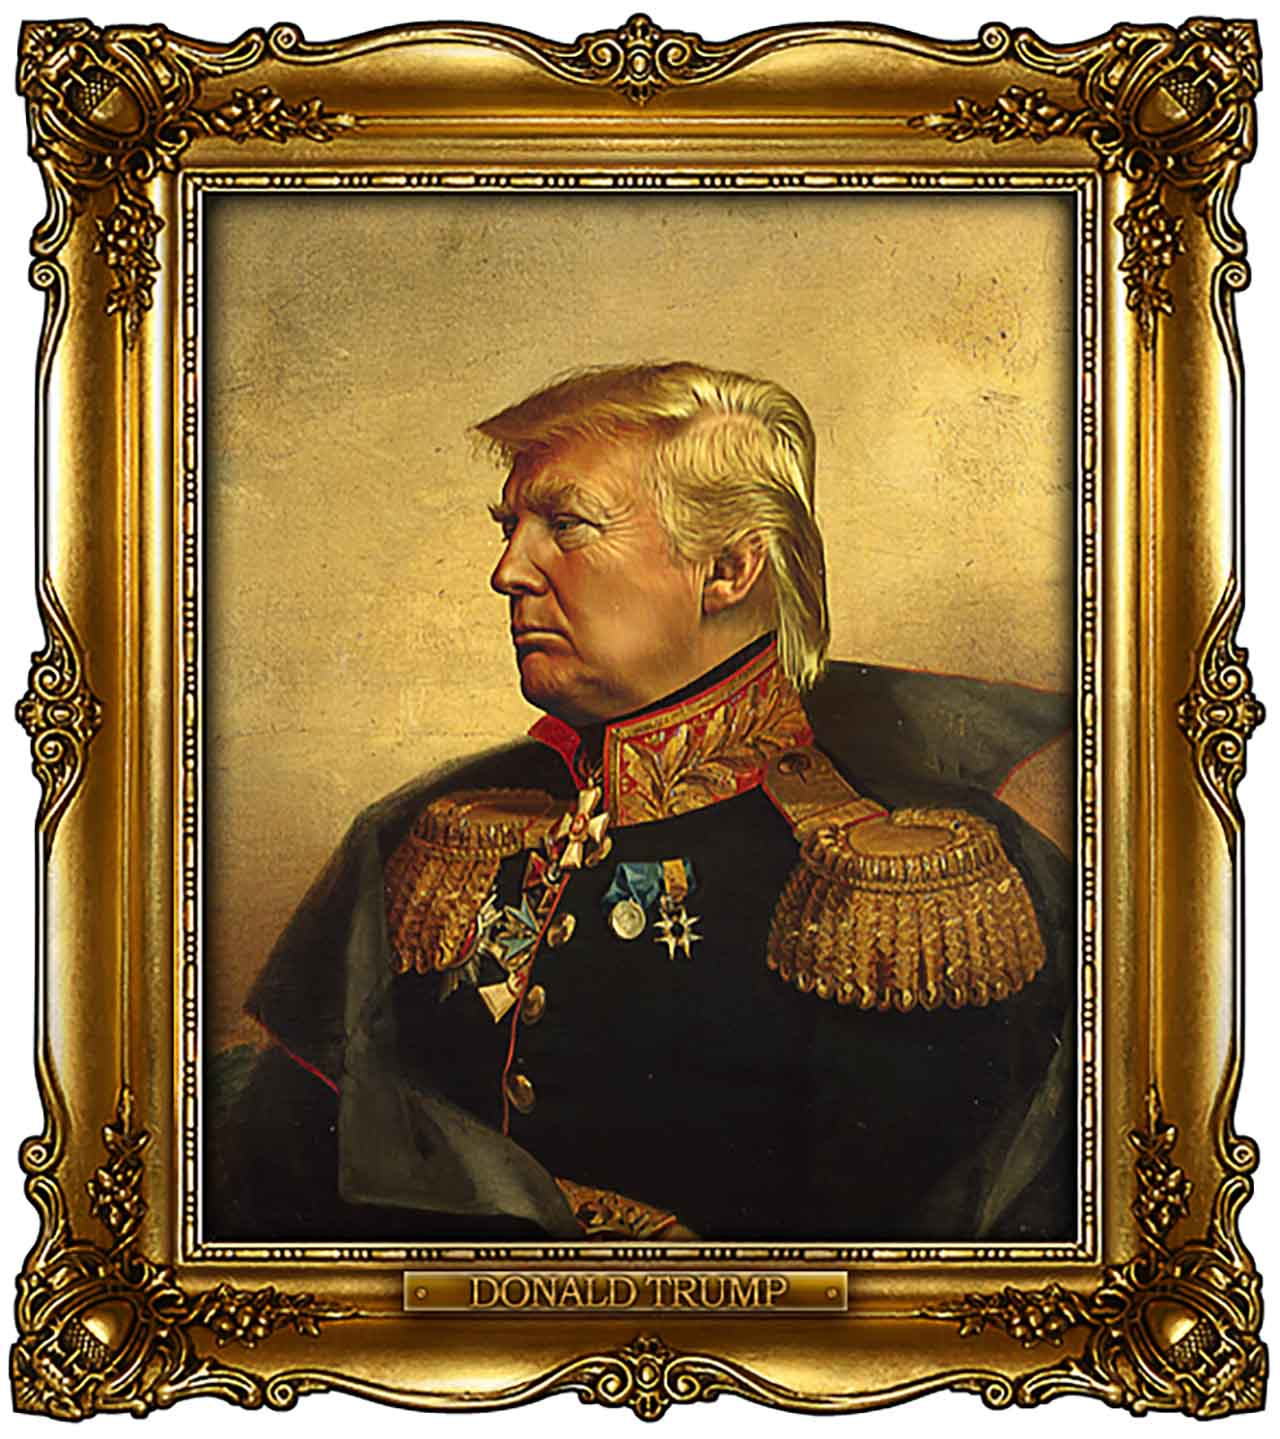 Artist Turns Famous Actors Into Russian Generals - Donald Trump